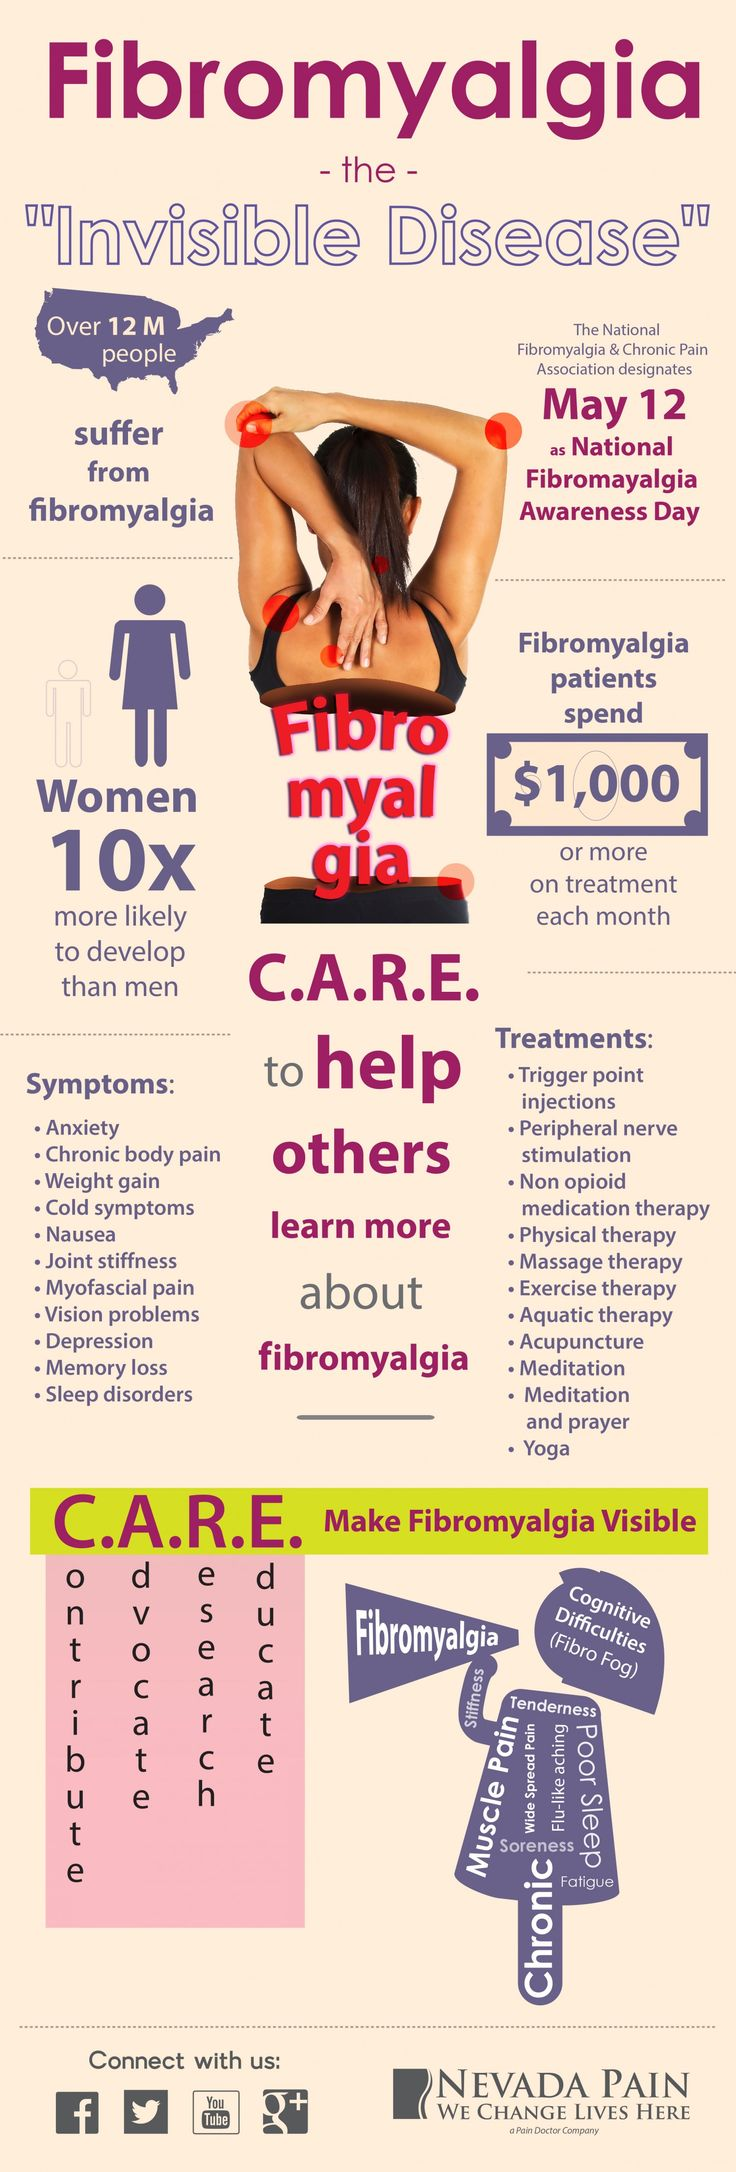 Learn more about symptoms which may be related to migraine disorders http://www.migrainedisorders.org/symptoms/